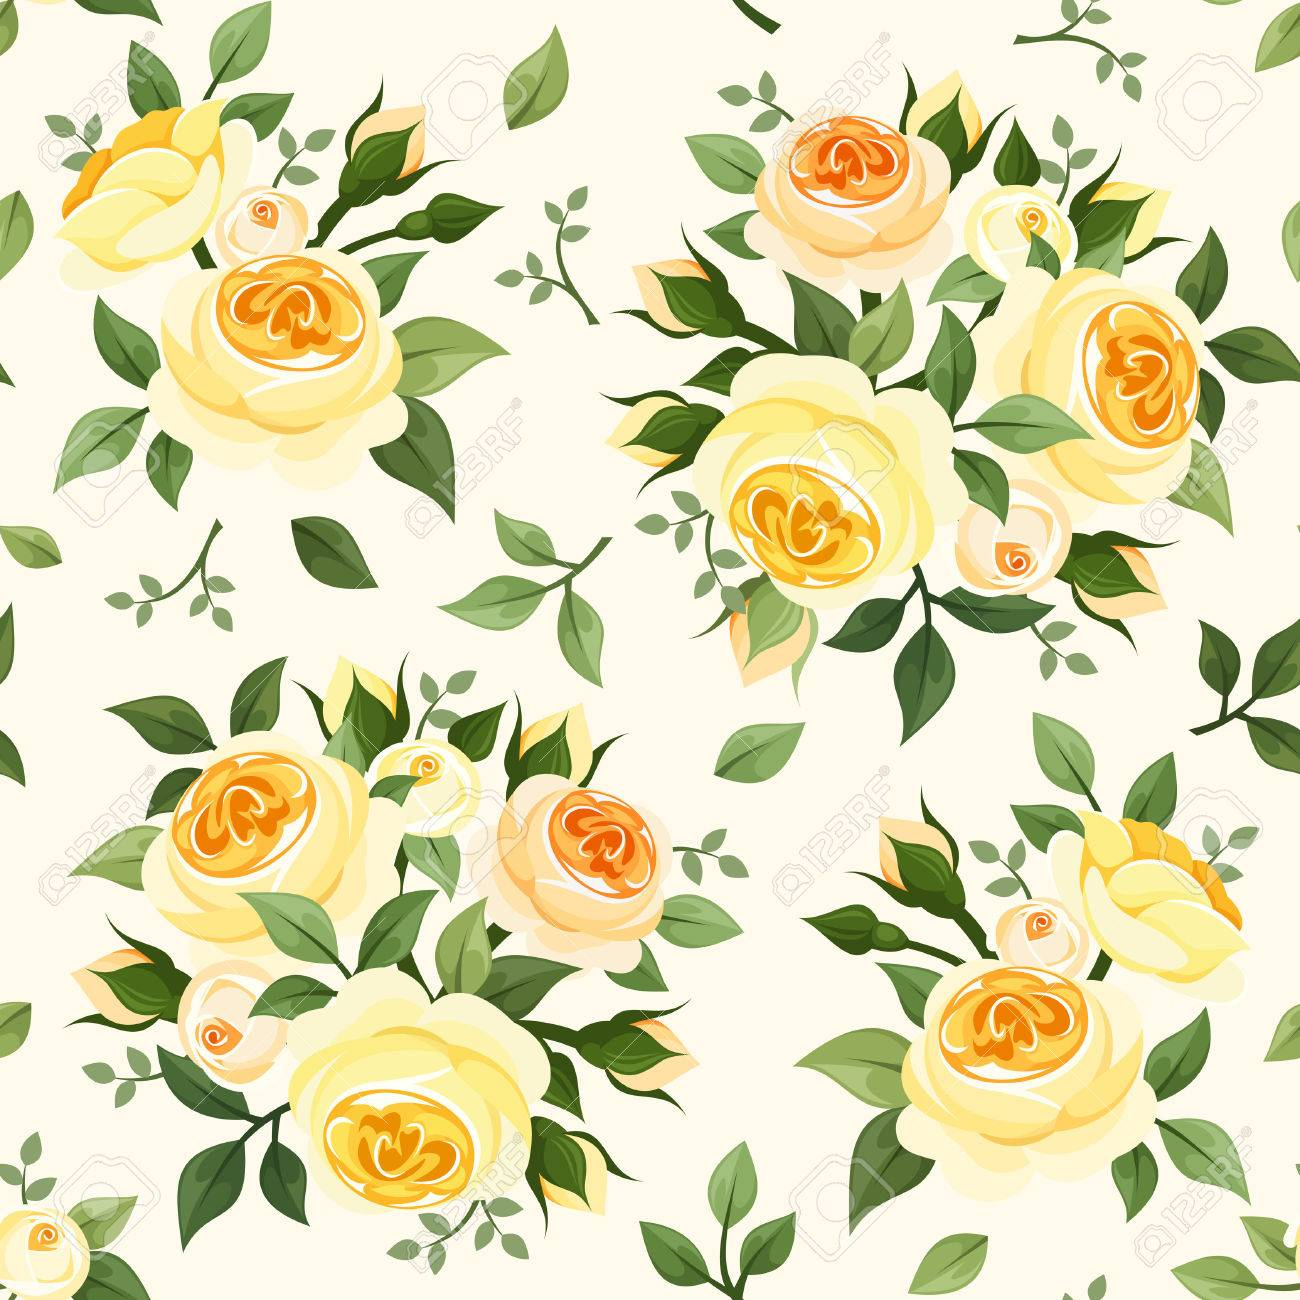 Seamless Pattern With Yellow Roses Vector Illustration Royalty Free